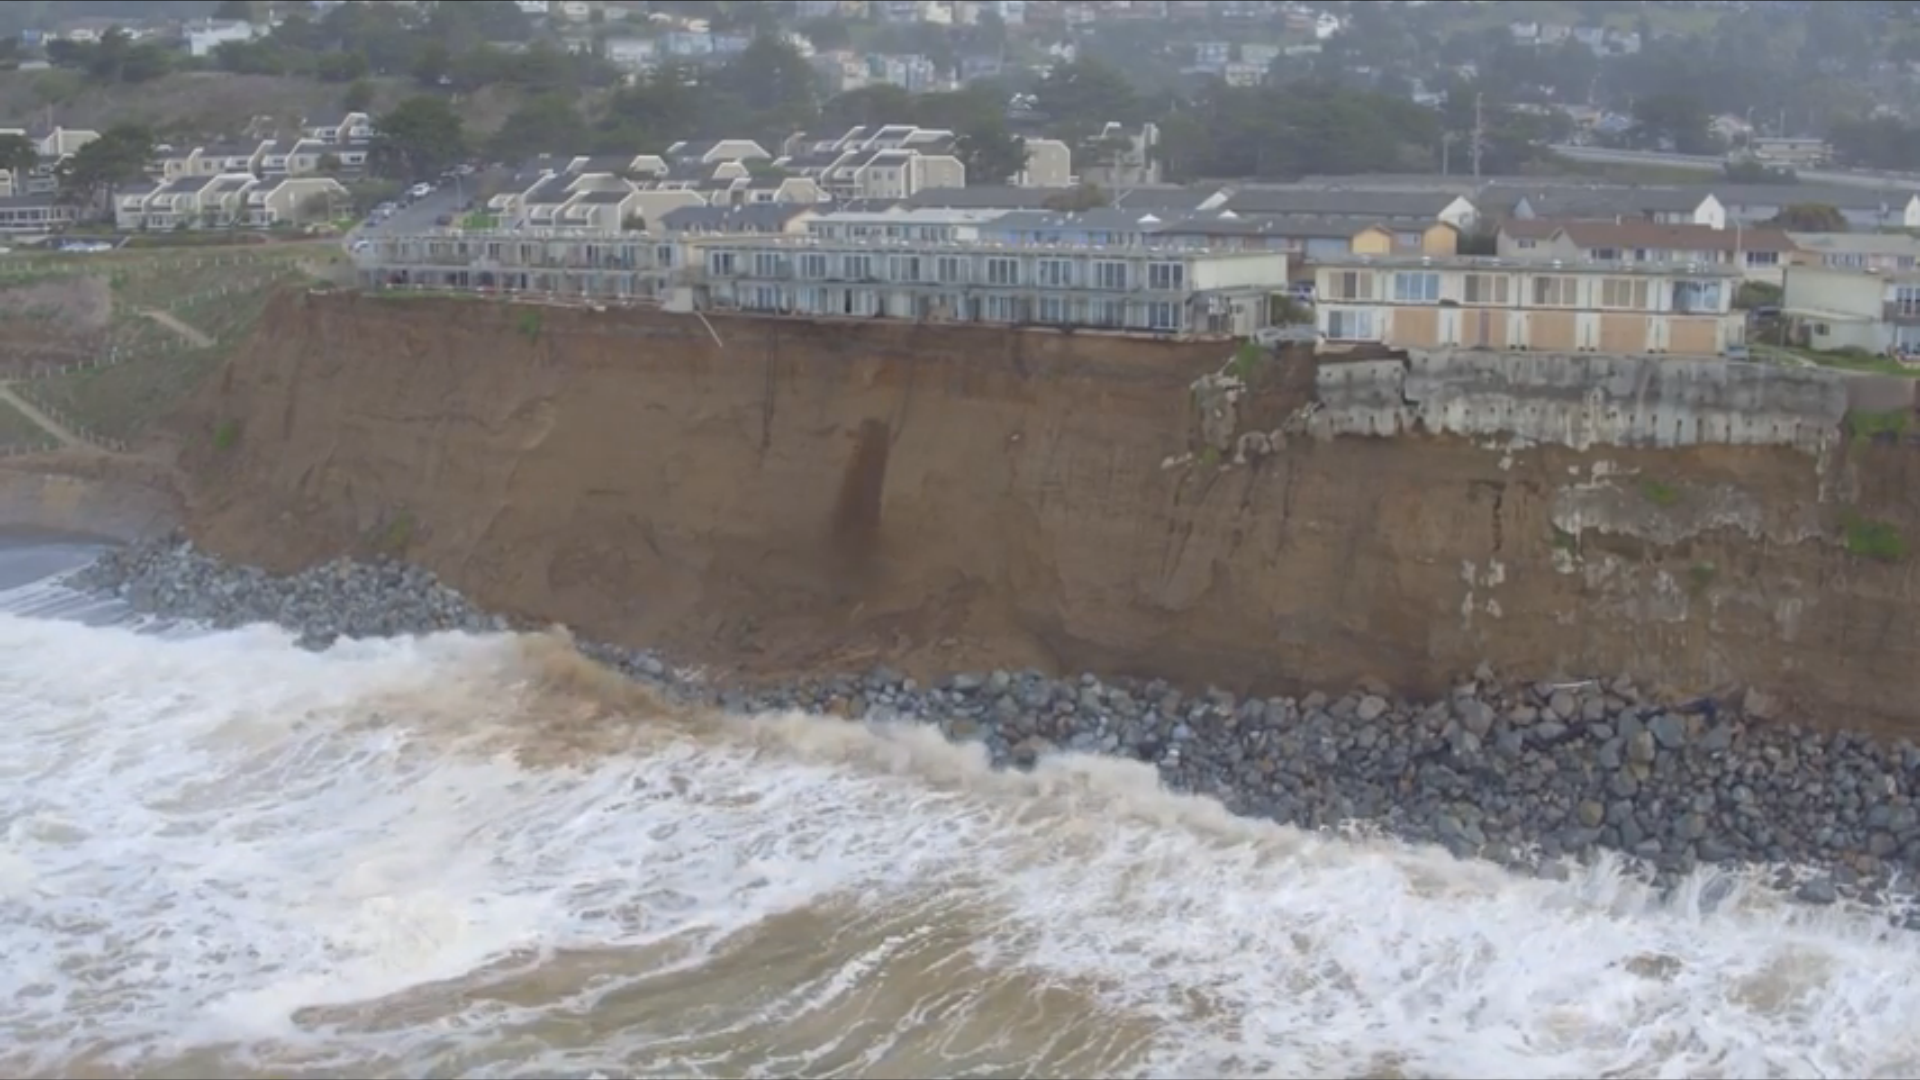 Effects of El Nino have threatened the homes on the coastal bluffs near San Francisco. City officials have declared the area to be in a state of emergency due to the coastal erosion, and are in the process of seeking federal assistance.